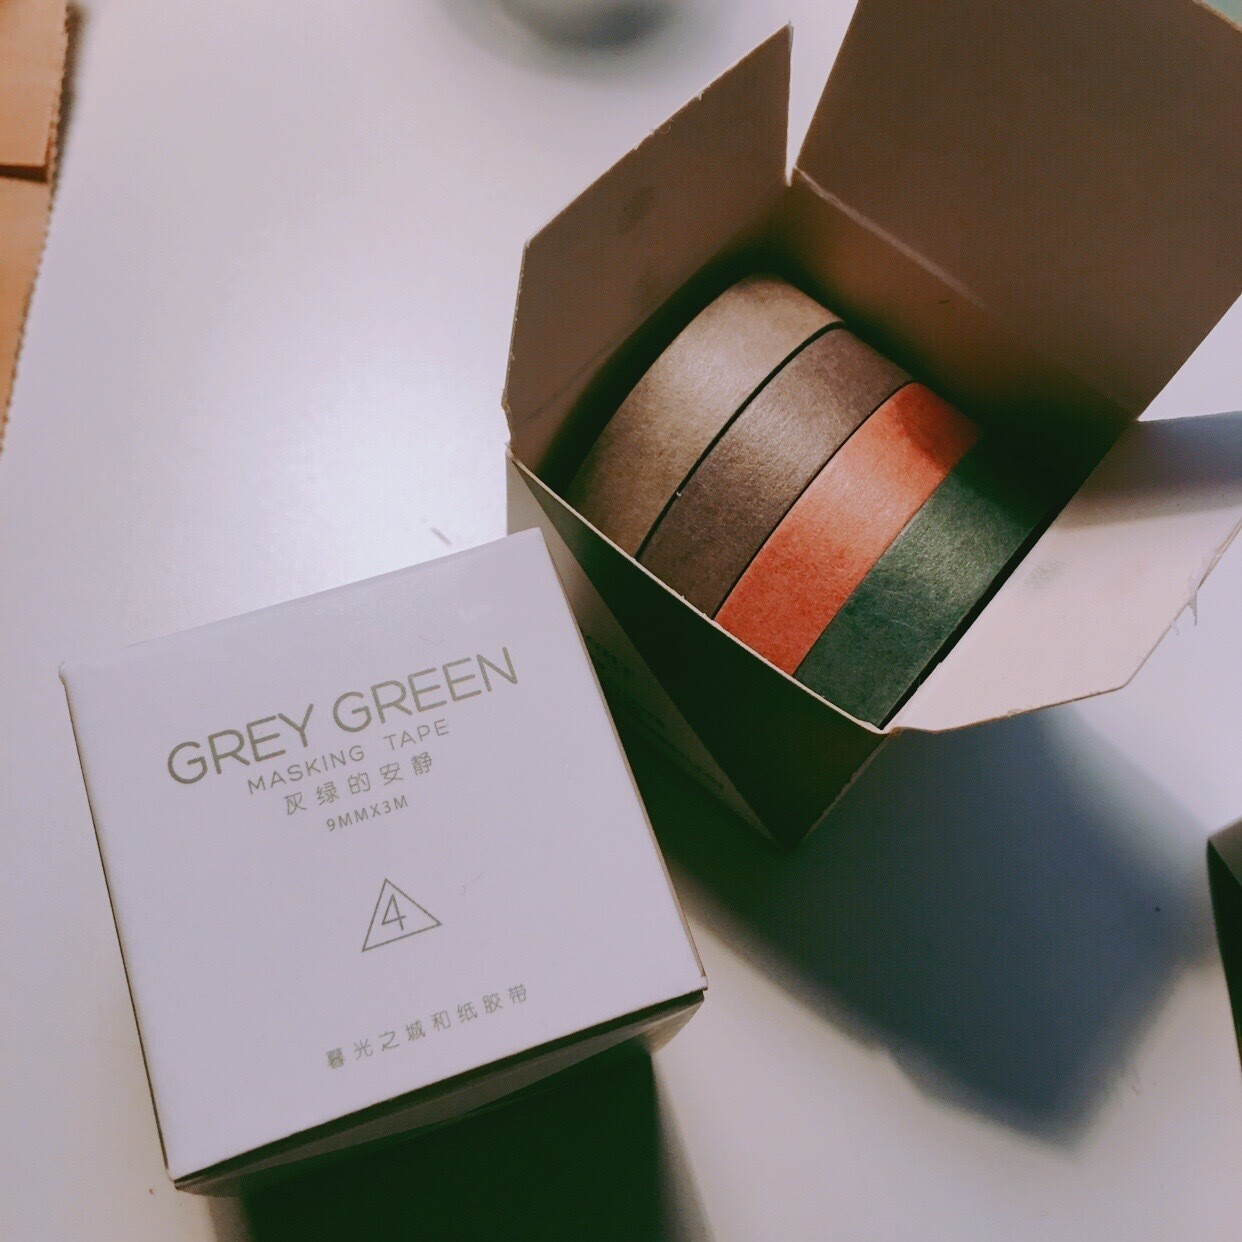 Grey Green Tape Set